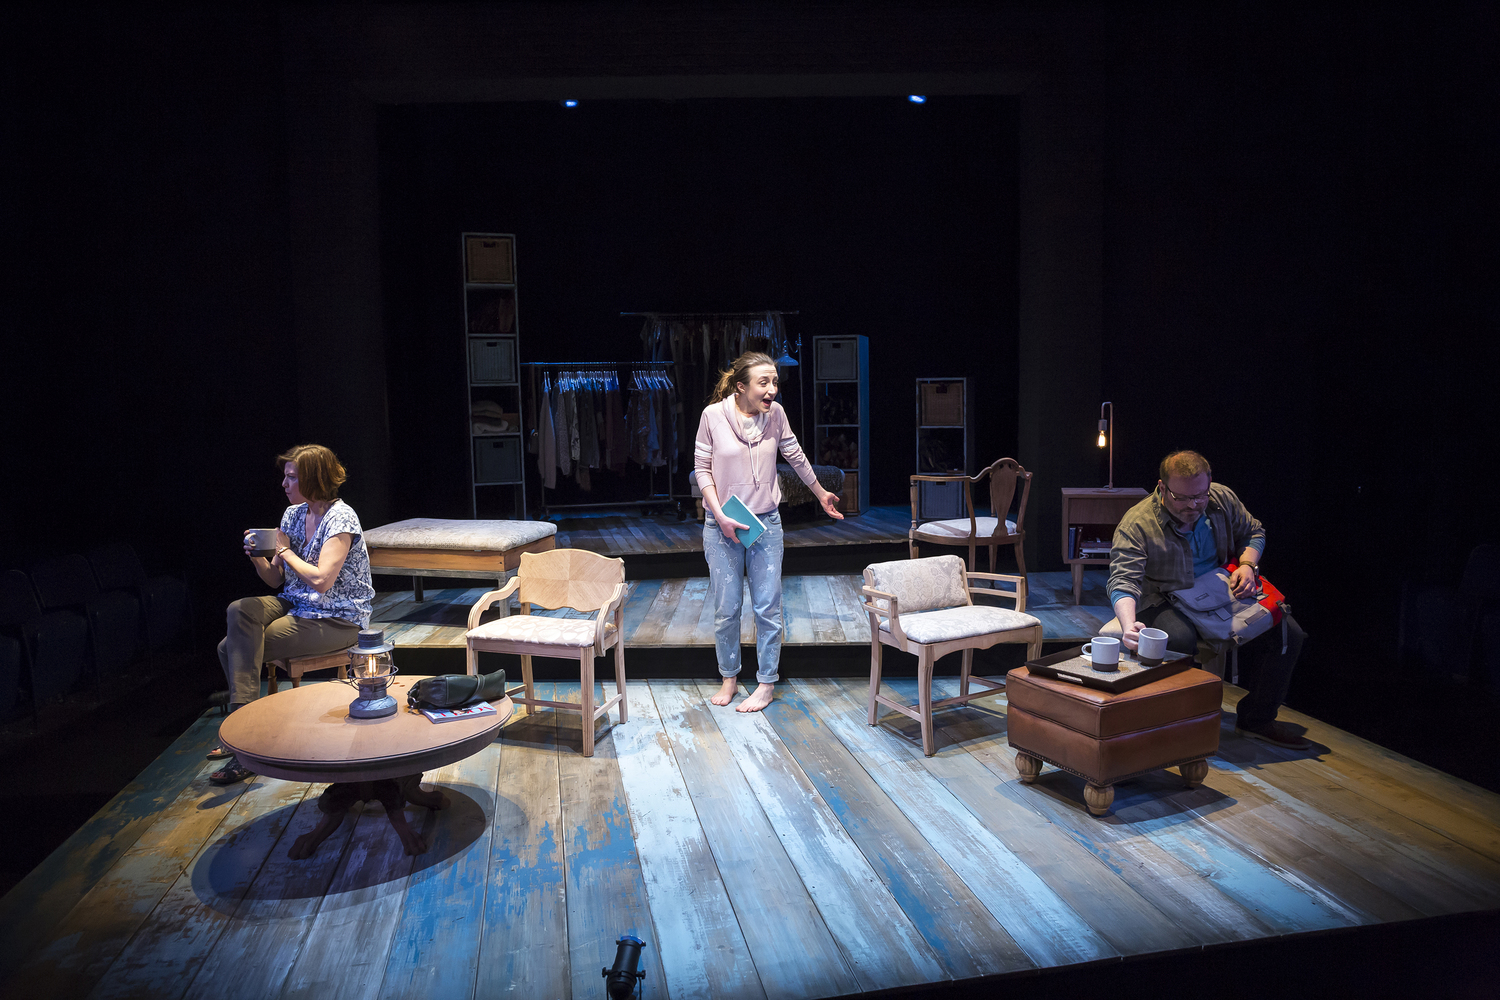 BWW Review: SOONER/LATER Reveals a Different Side of the Romantic Comedy at Cincinnati Playhouse In The Park